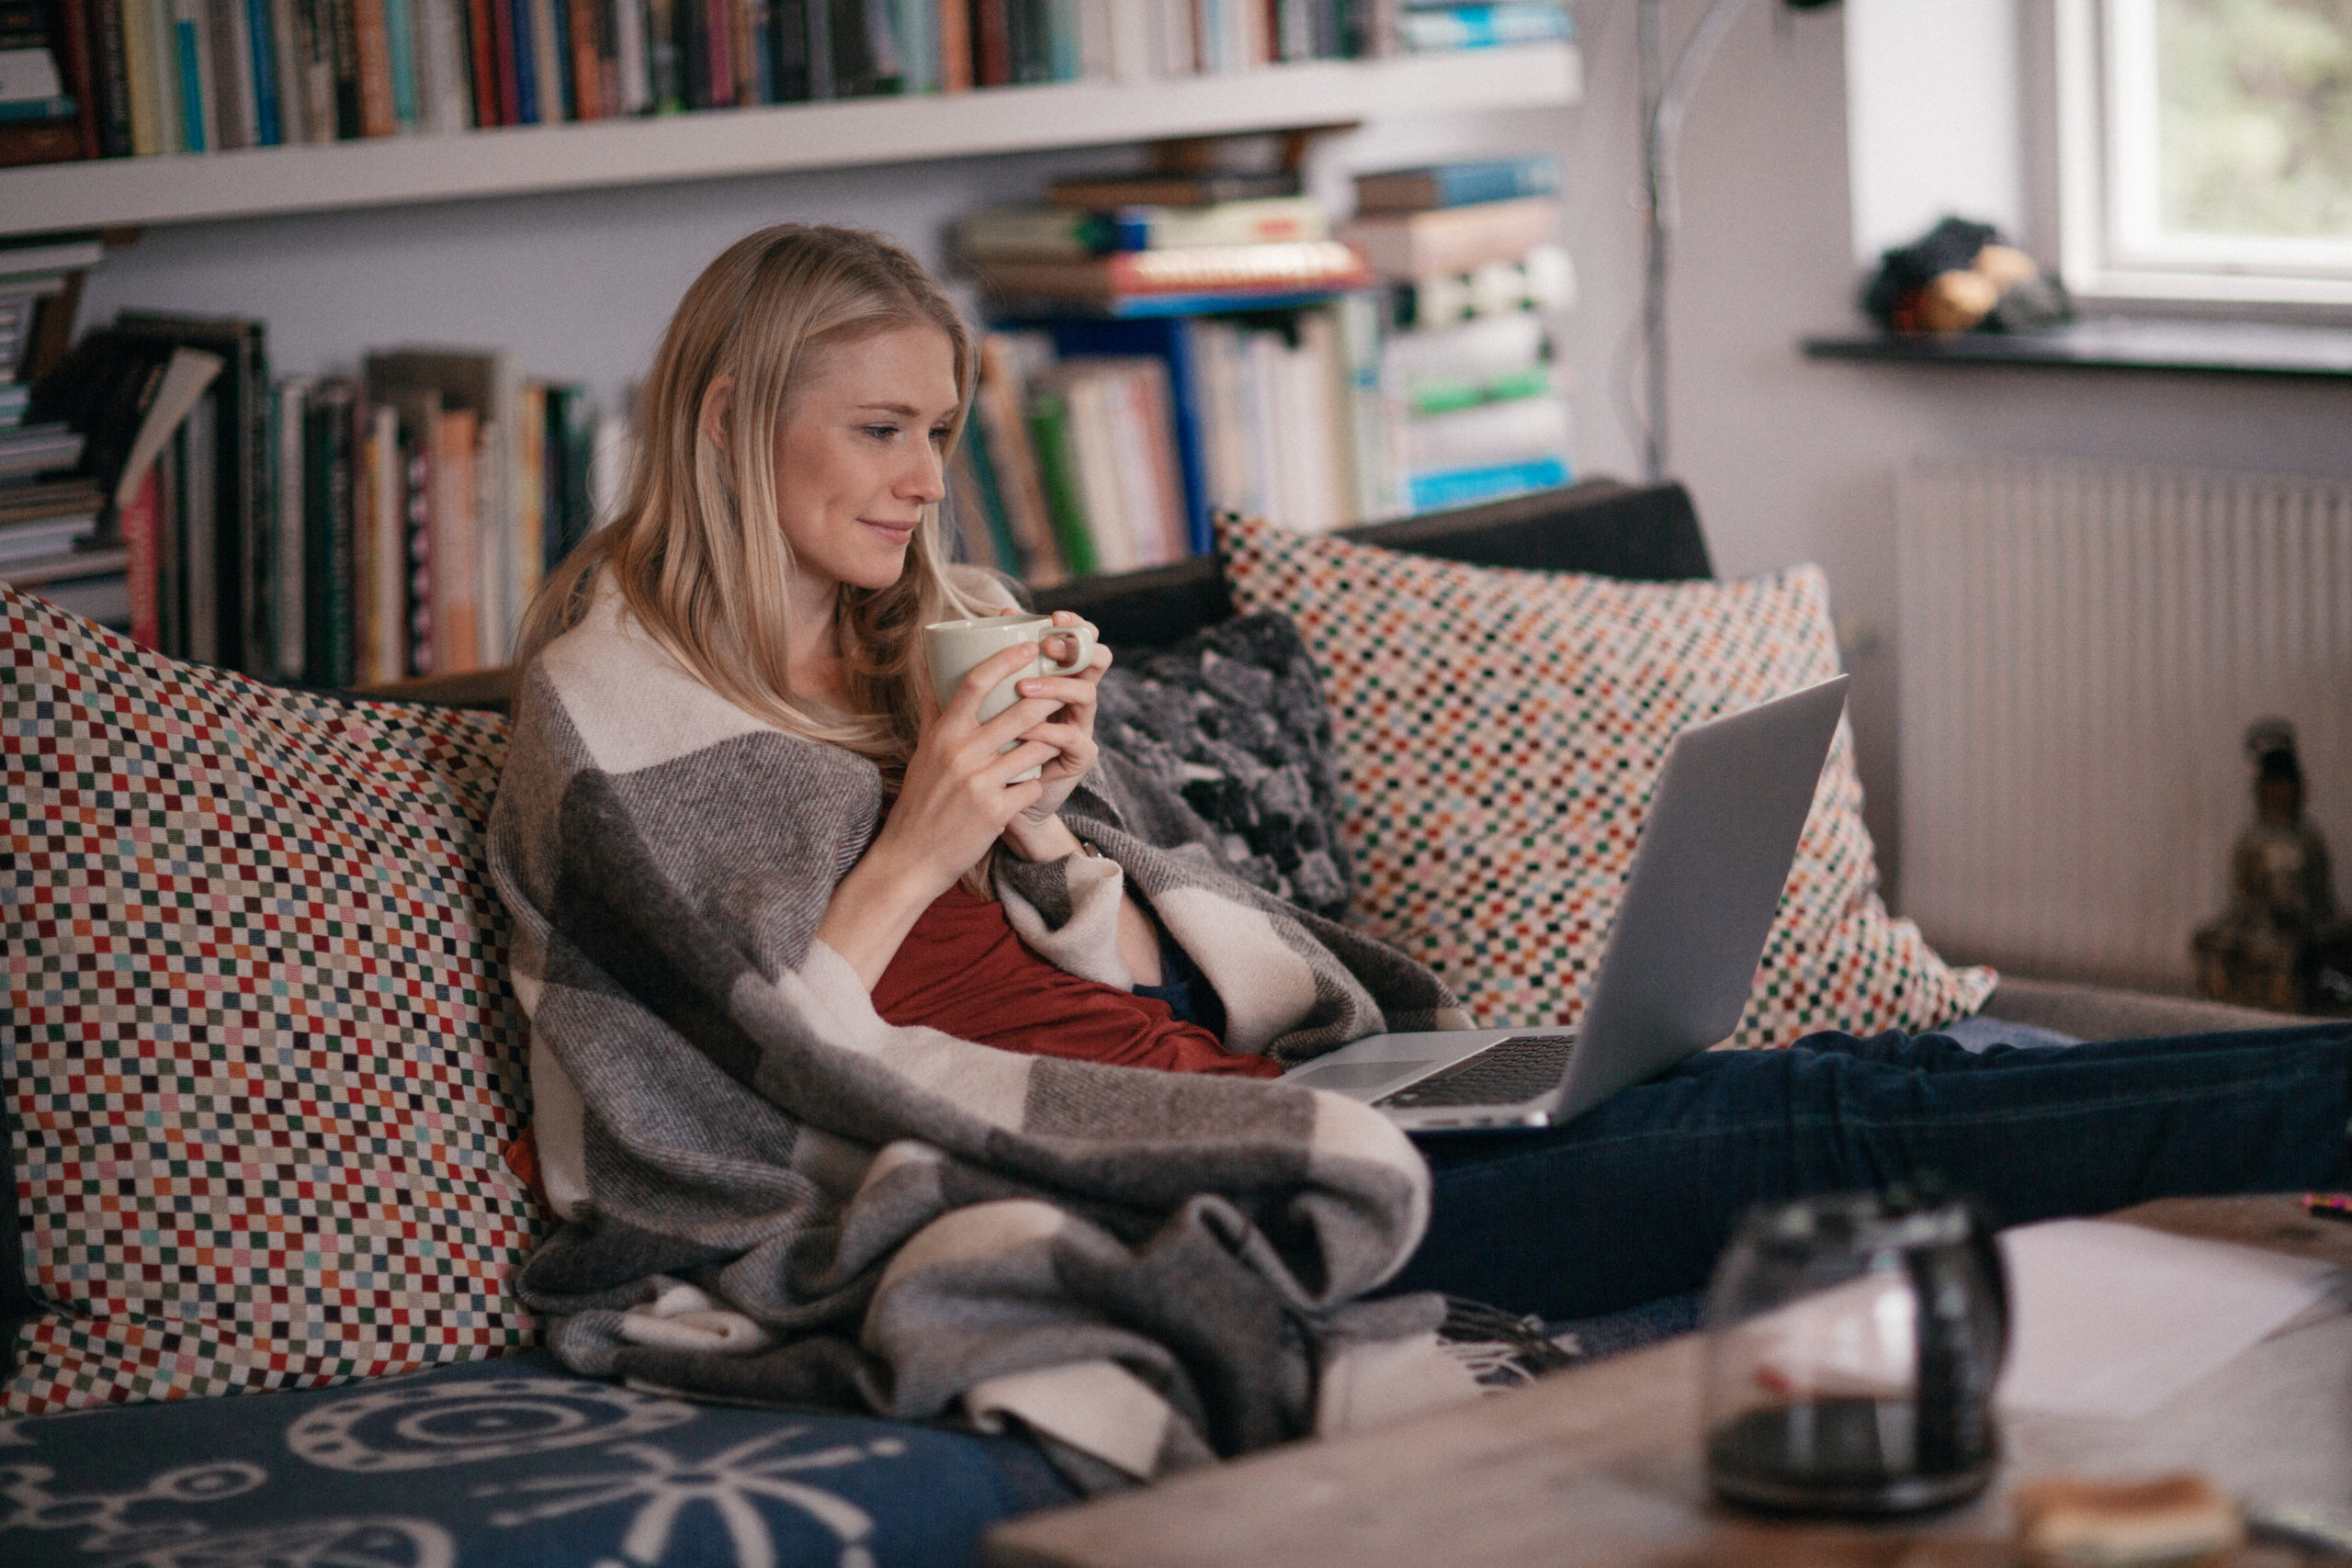 A woman watching a movie from her couch.